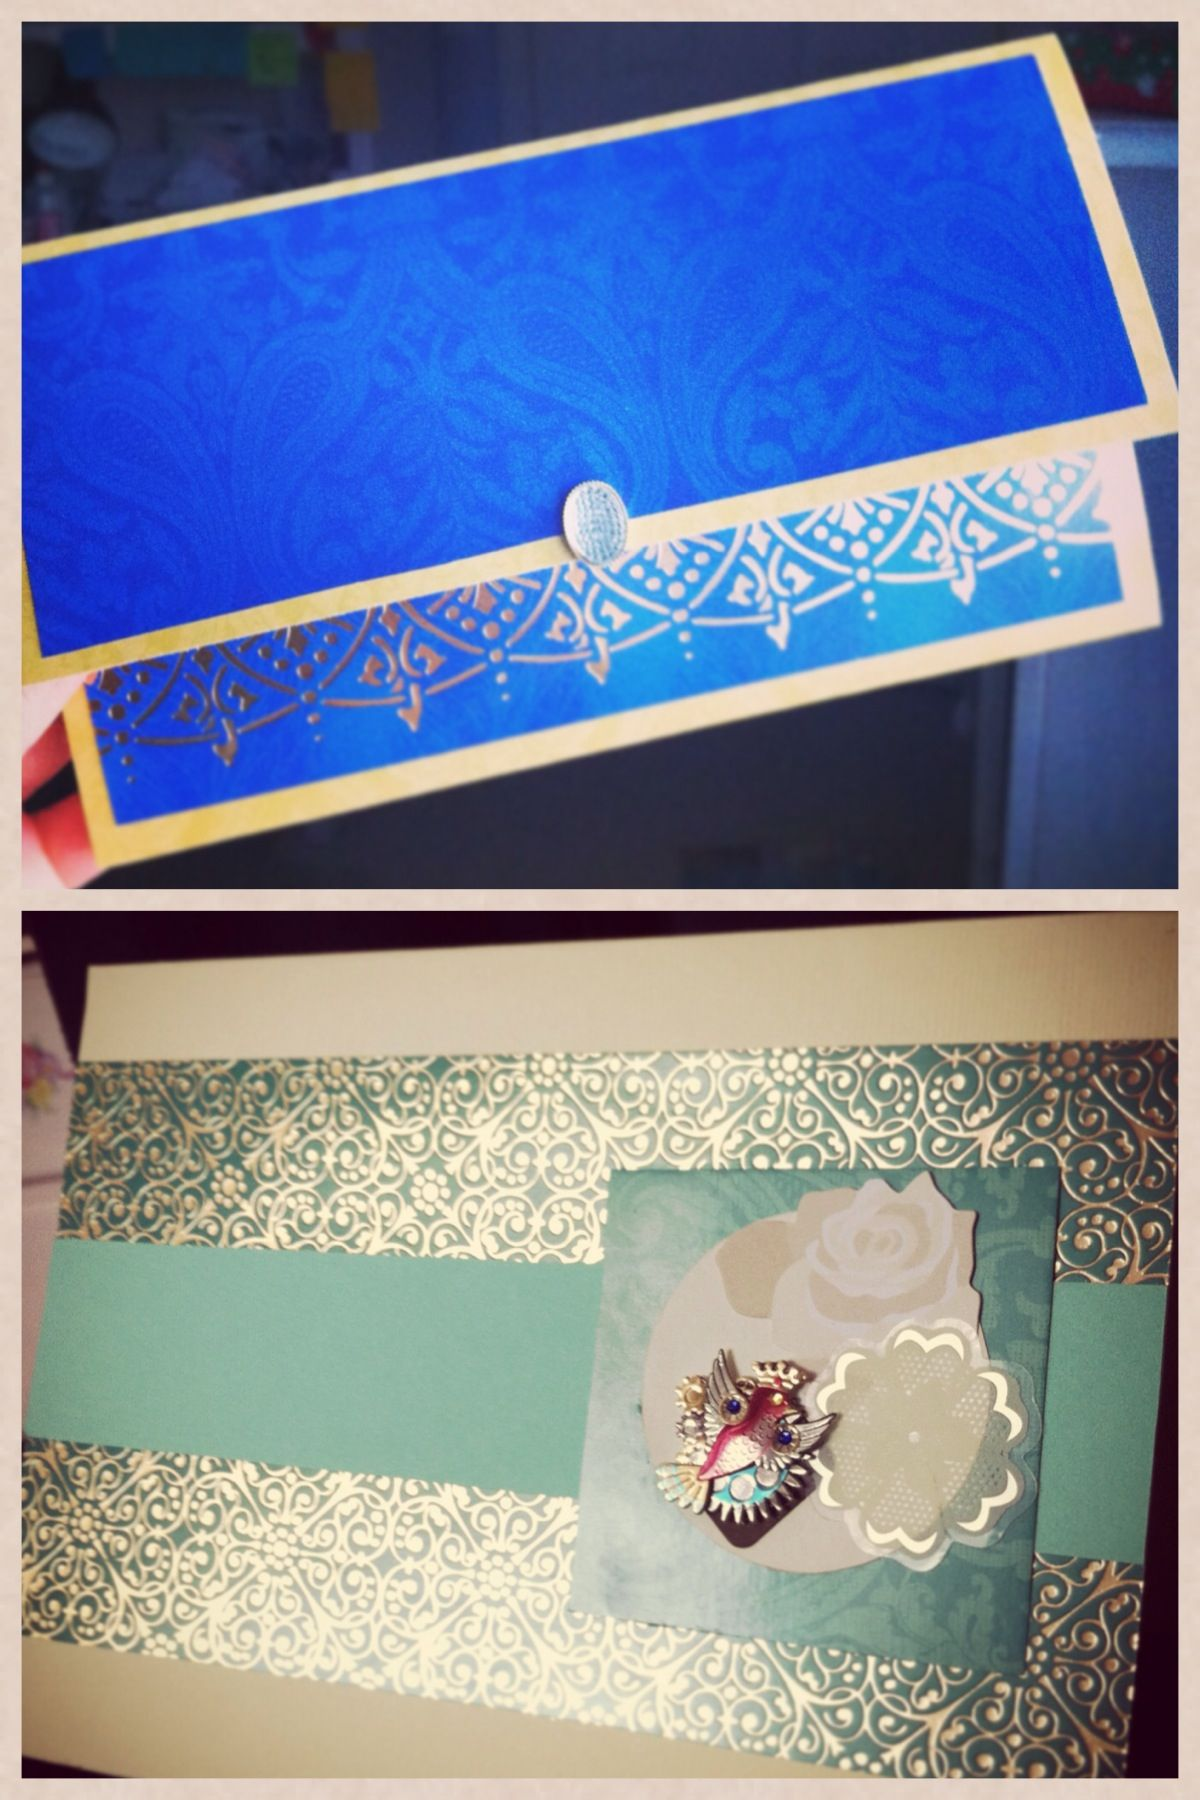 Personalized Cards I made  #art